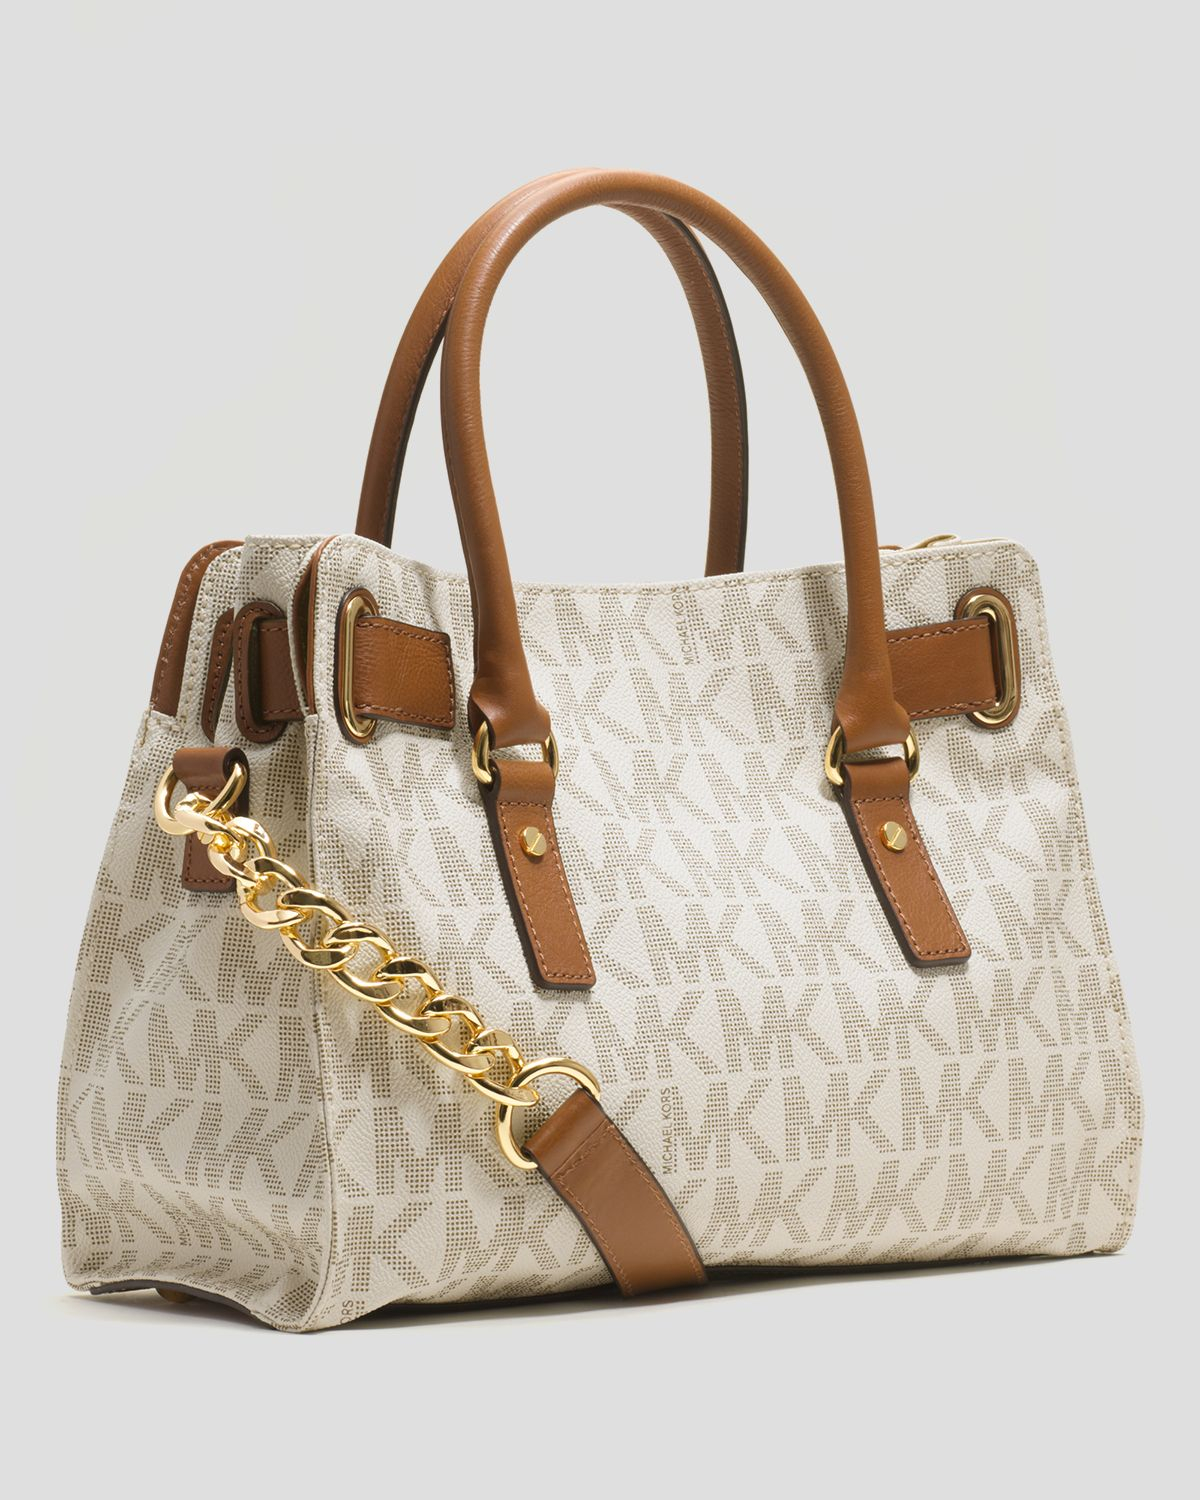 Michael Kors White And Brown Purse Best Image Ccdbb